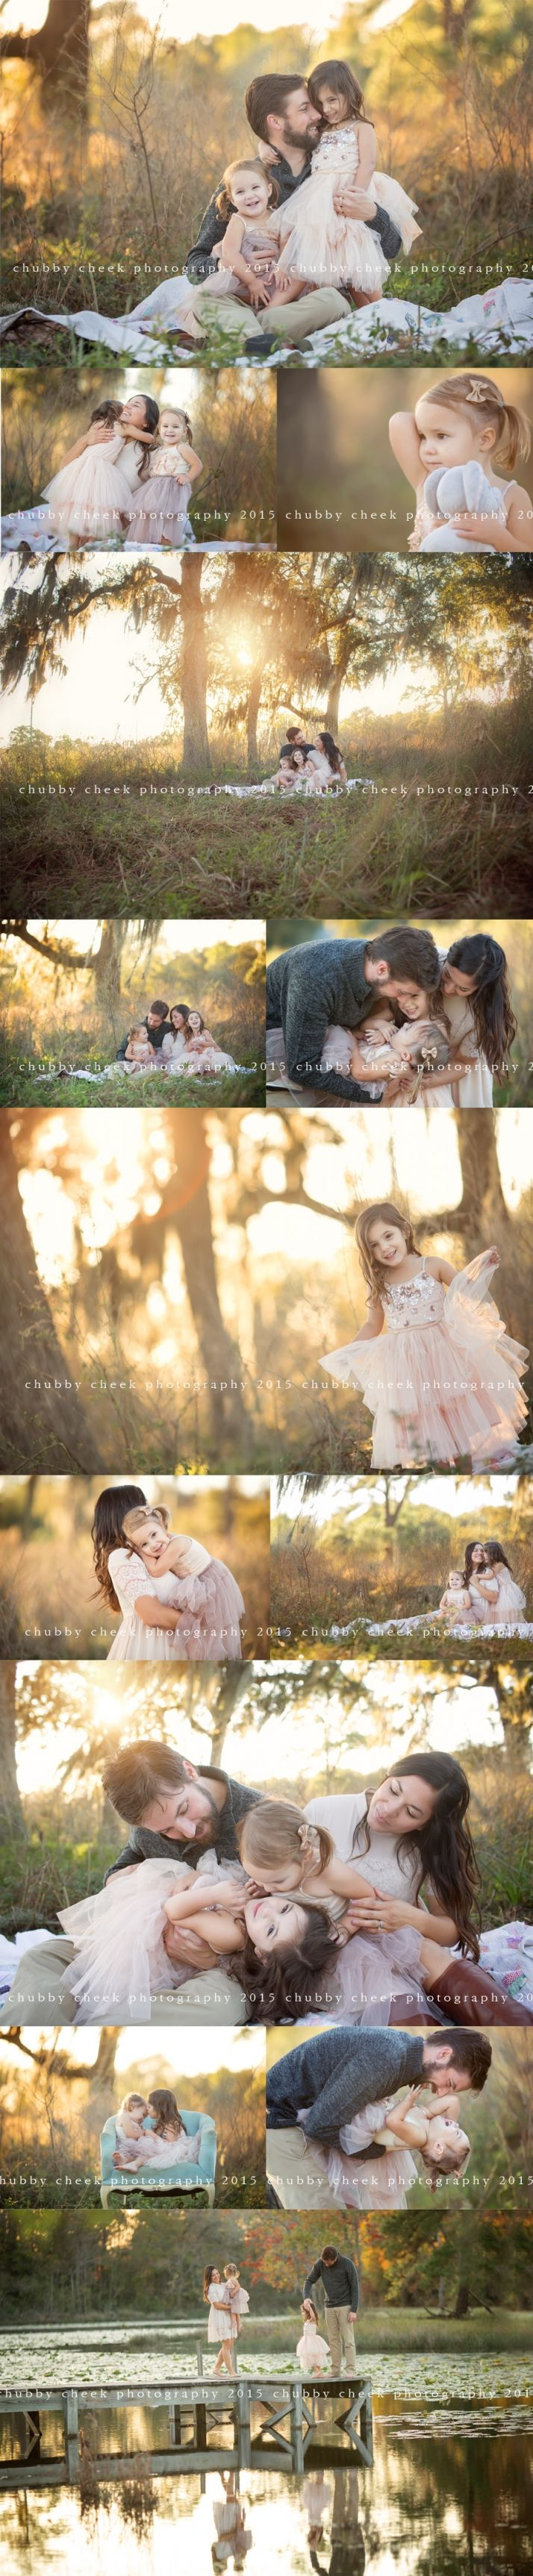 84 best Family session images on Pinterest | Family pictures, Family ...